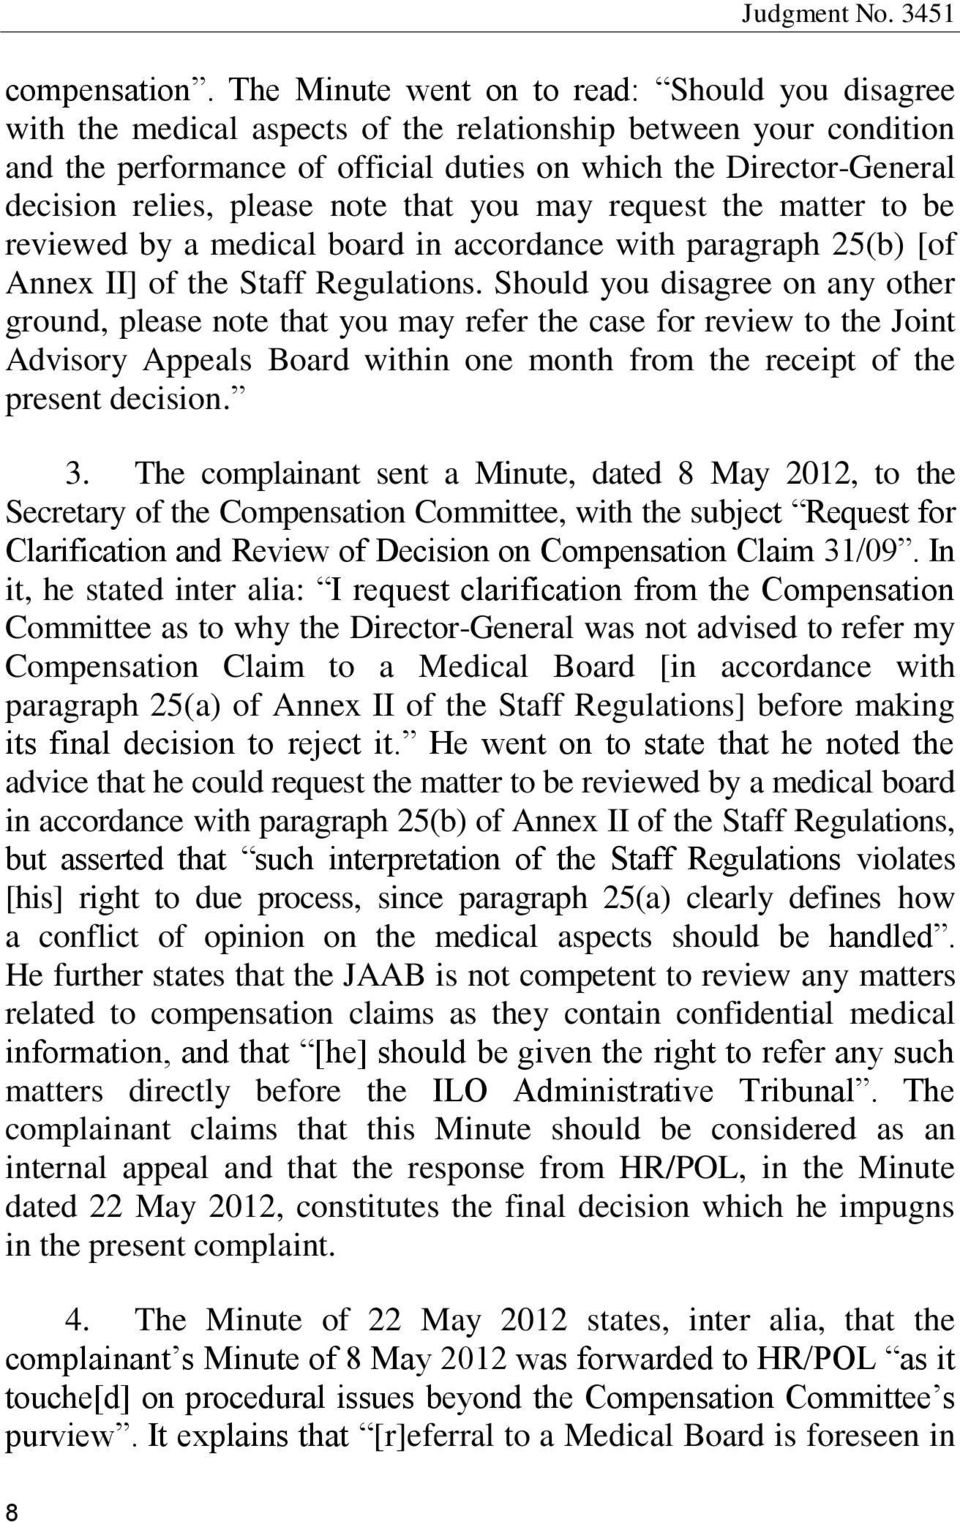 relies, please note that you may request the matter to be reviewed by a medical board in accordance with paragraph 25(b) [of Annex II] of the Staff Regulations.